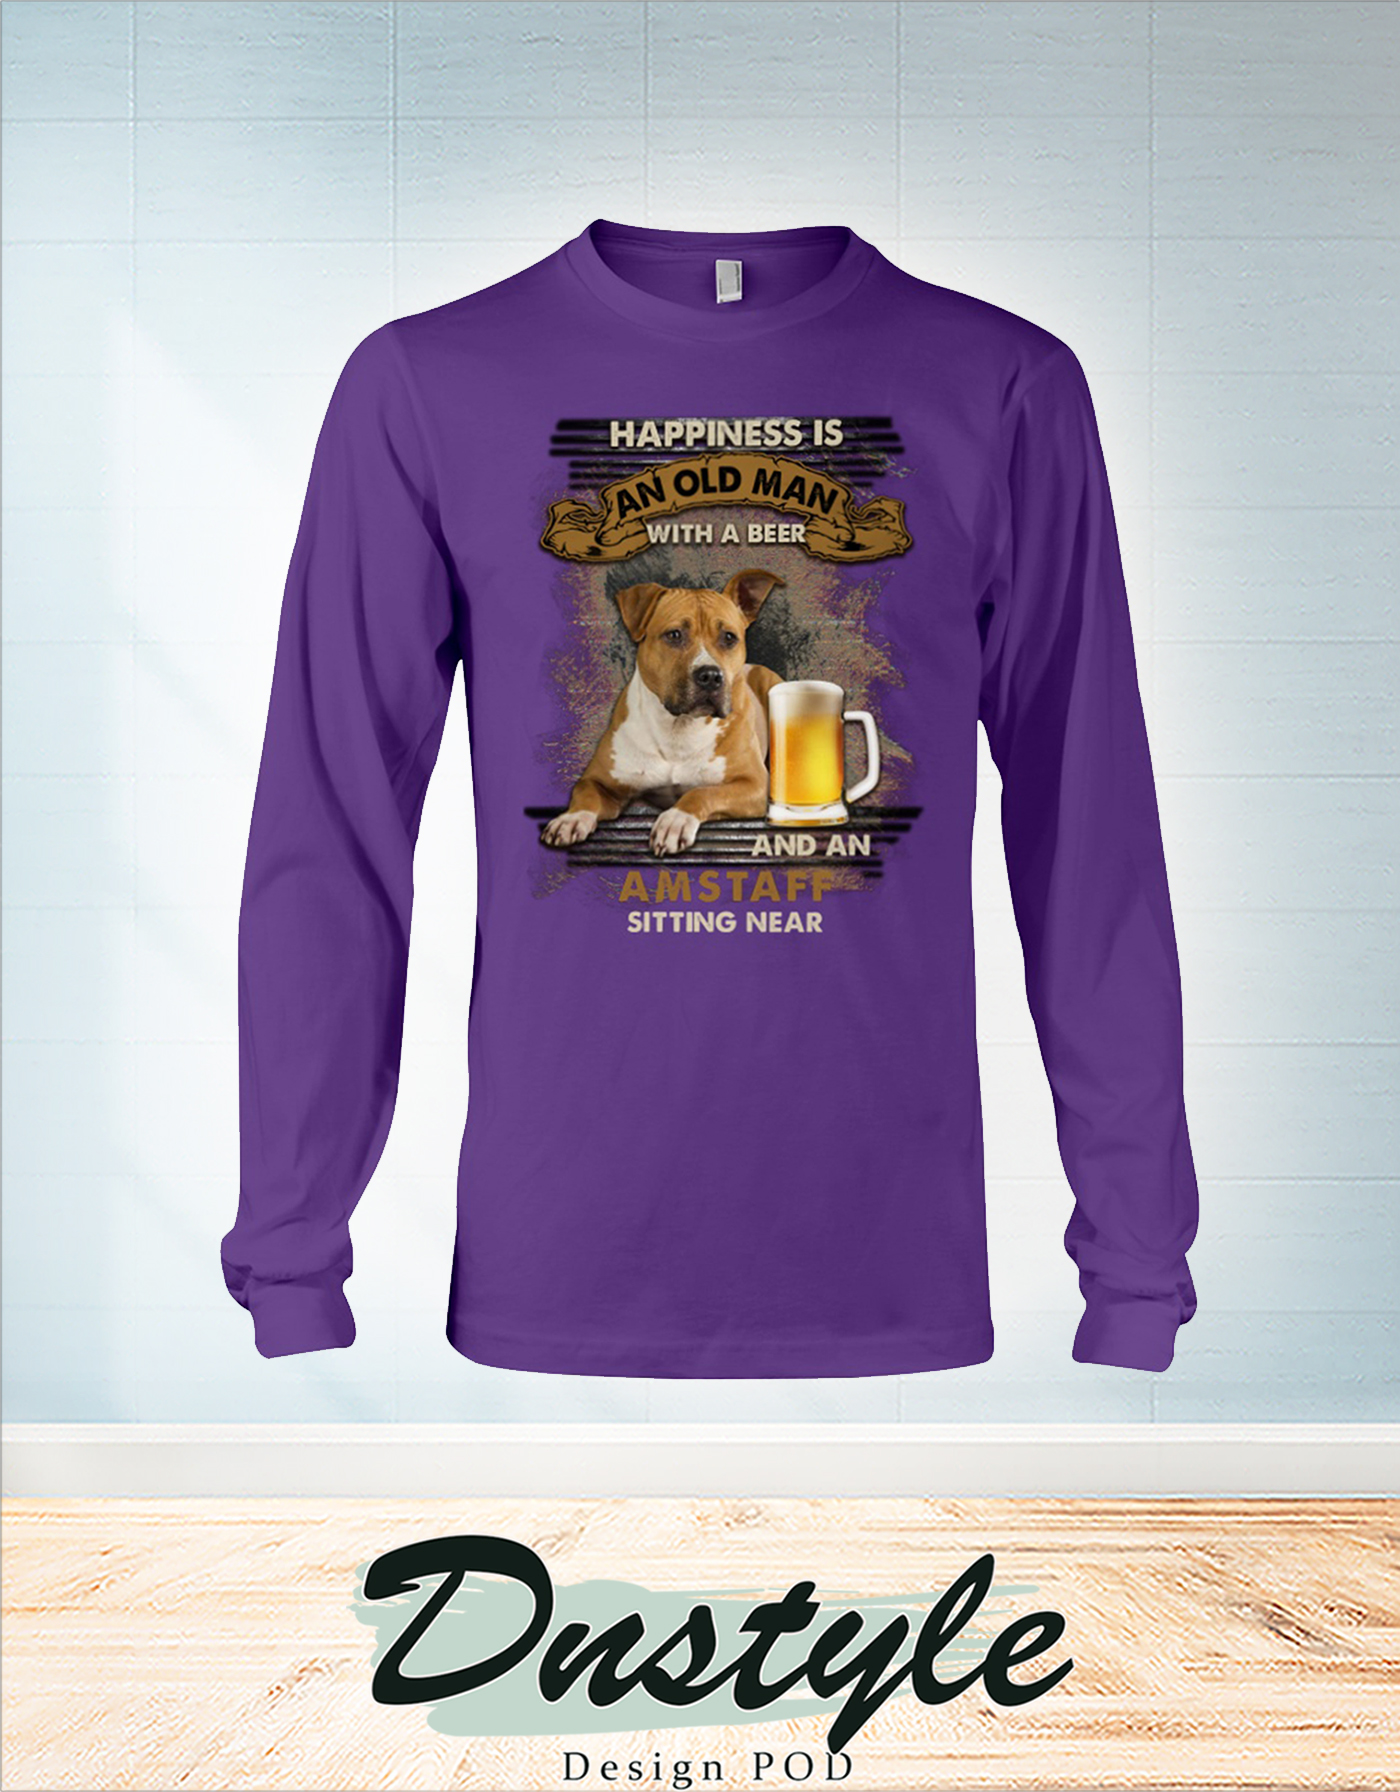 Happiness is an old man with a beer and a Amstaff sitting near long sleeve